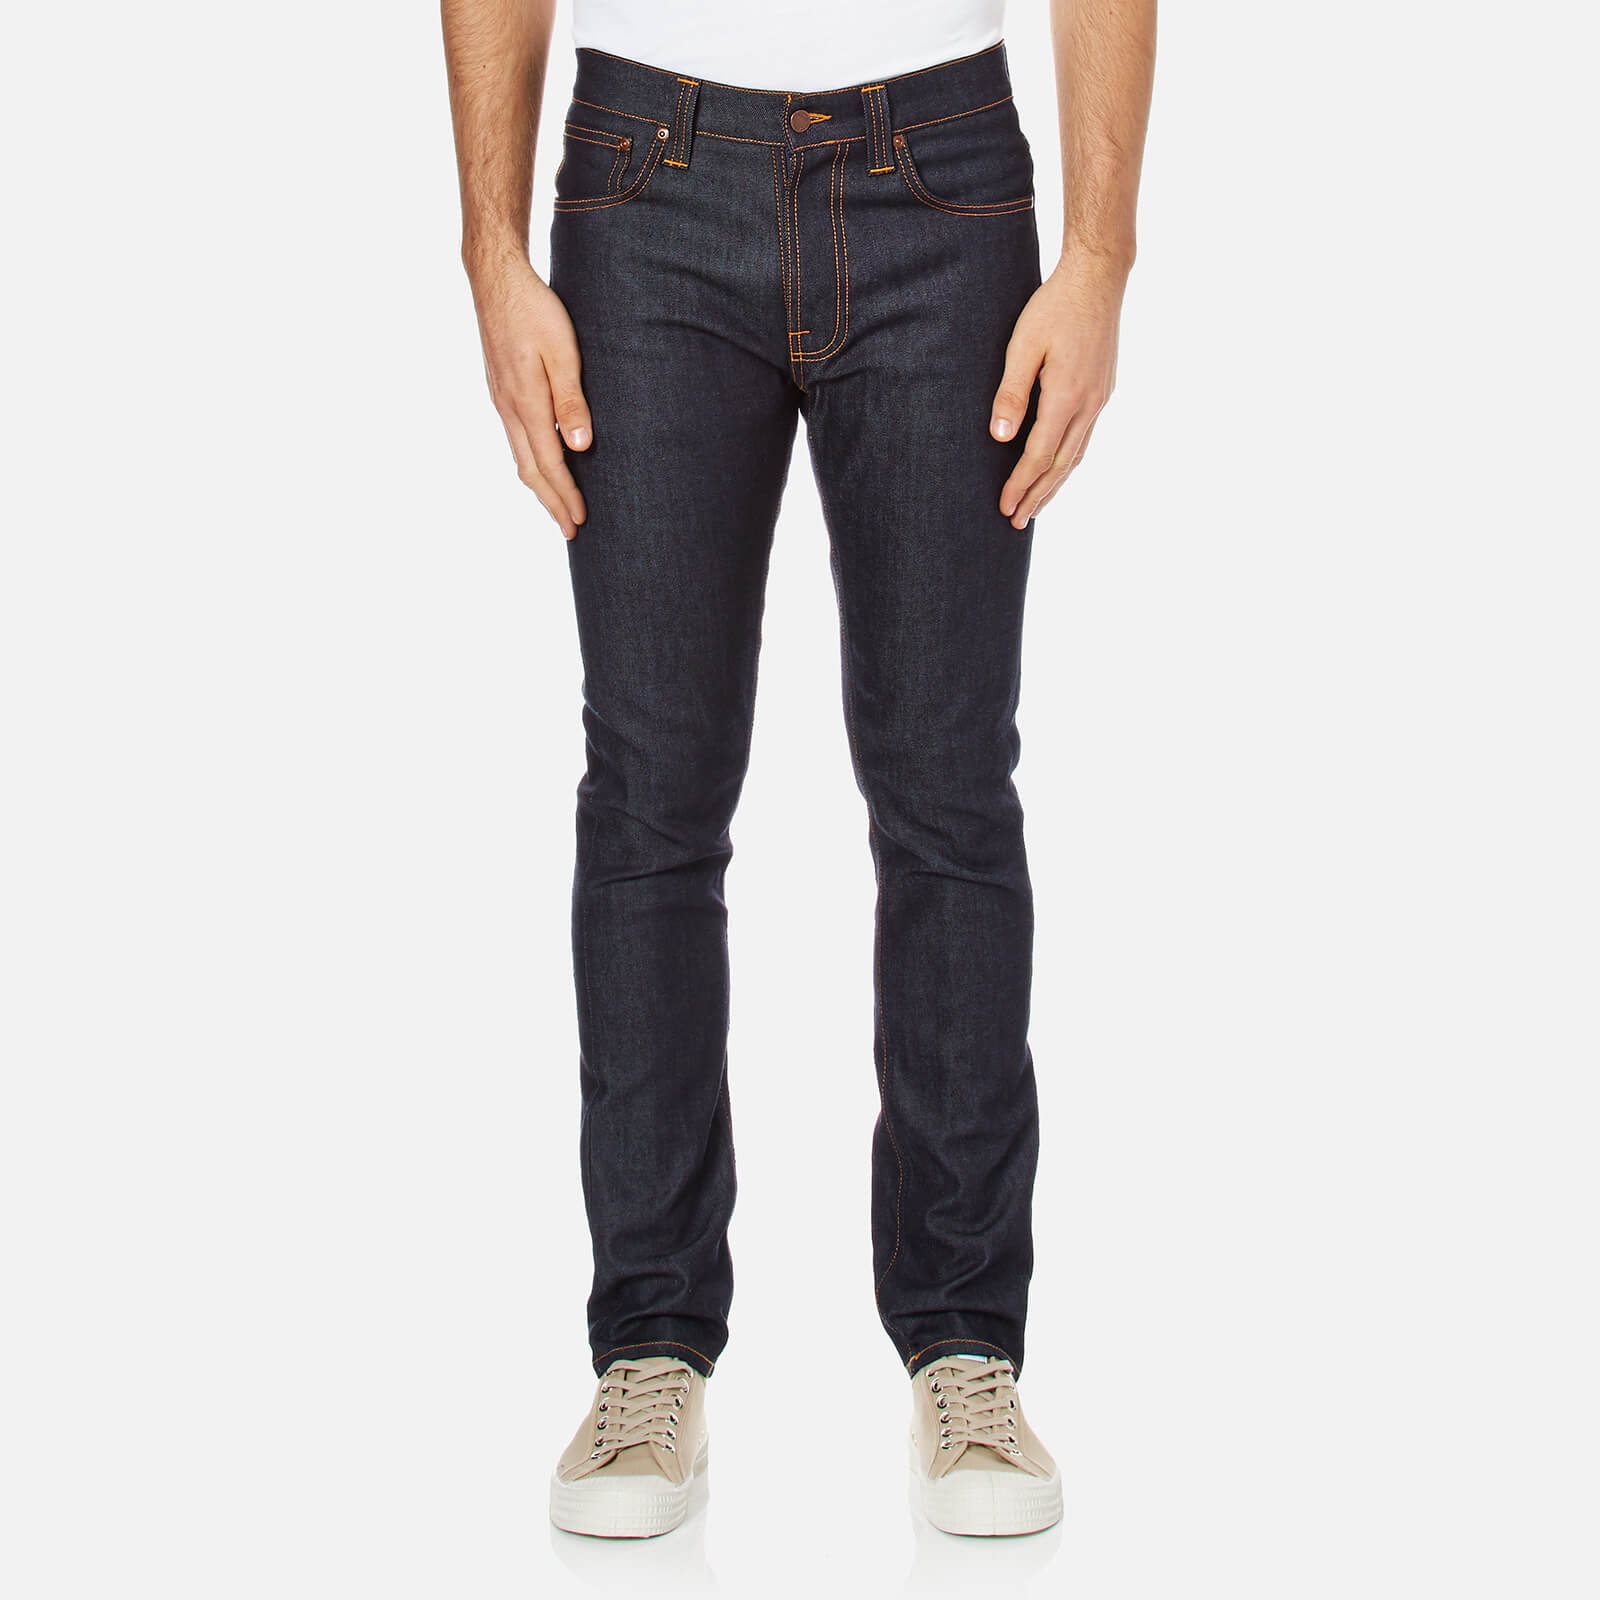 Vintage Levi's 501 Mens Customised and Tapered Jeans Mens Jeans Buy Jeans for Men COLOUR-dalston